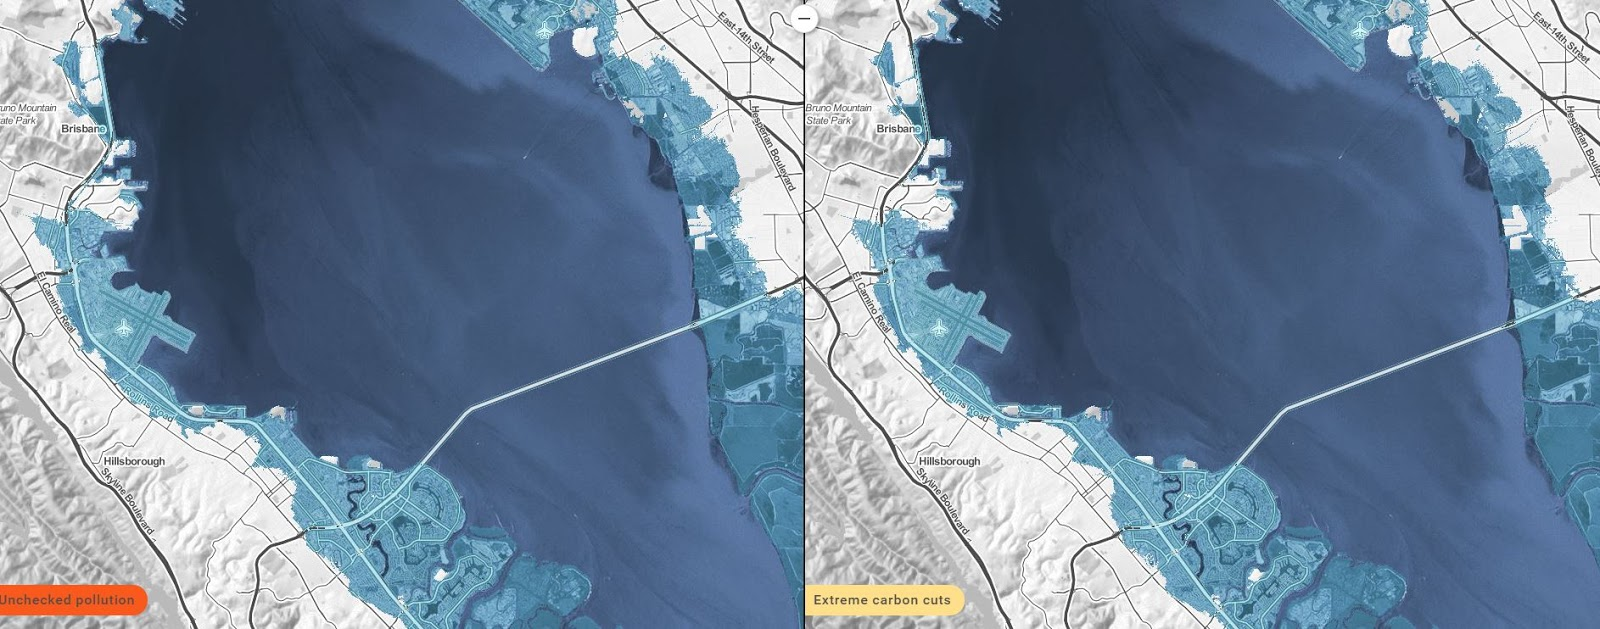 by 2050 highways 101 and 880 are underwater as are sfo and oak